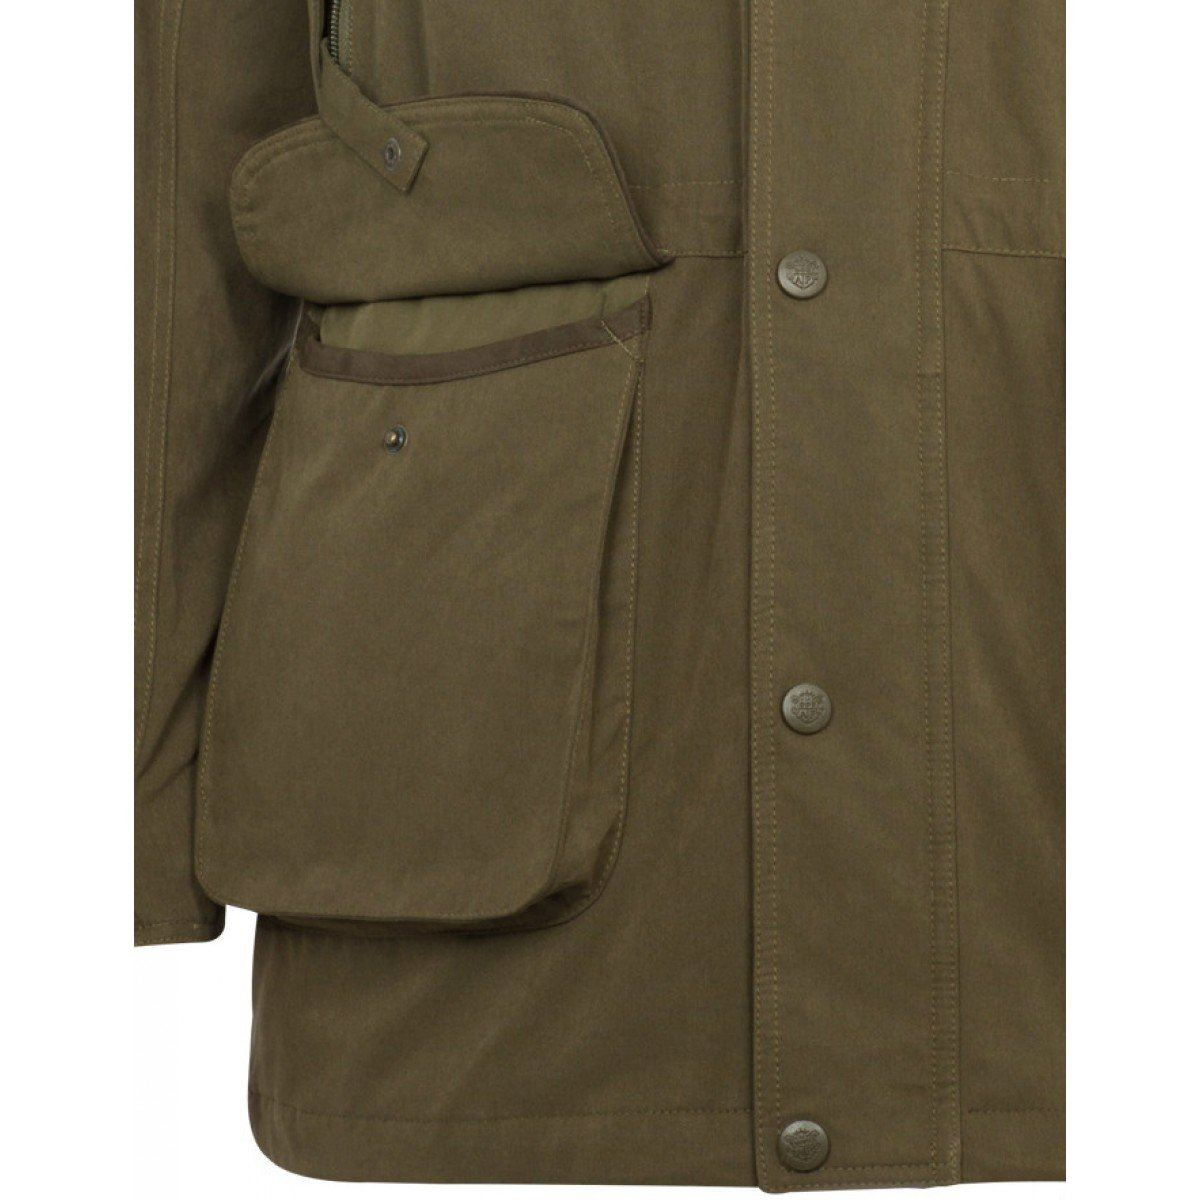 Fortress Flex Lined Jacket Olive PU Tricot Country Hunting Shooting,workwear